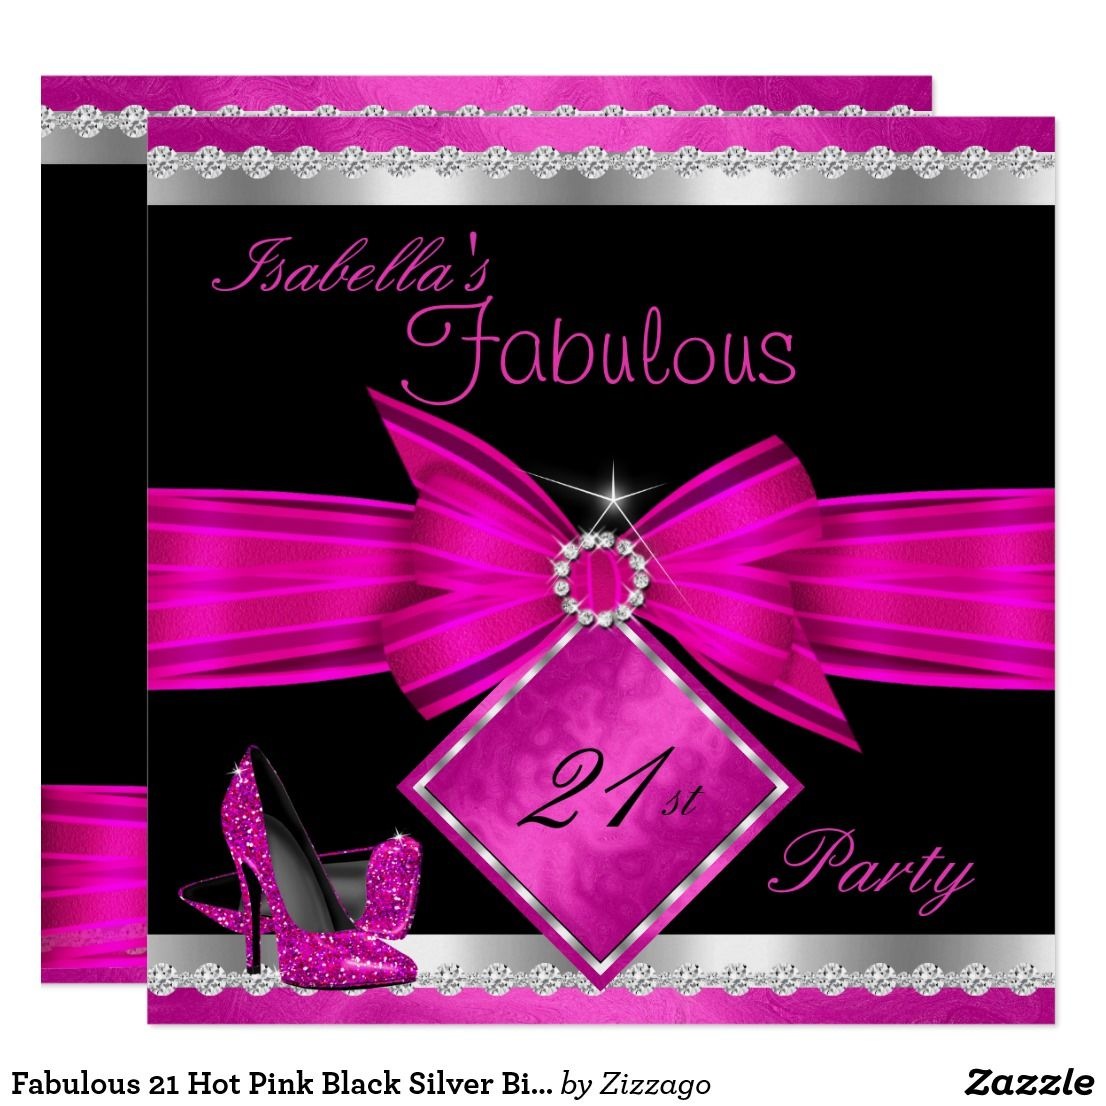 Fabulous 21 Hot Pink Black Silver Birthday Party Invitation ...